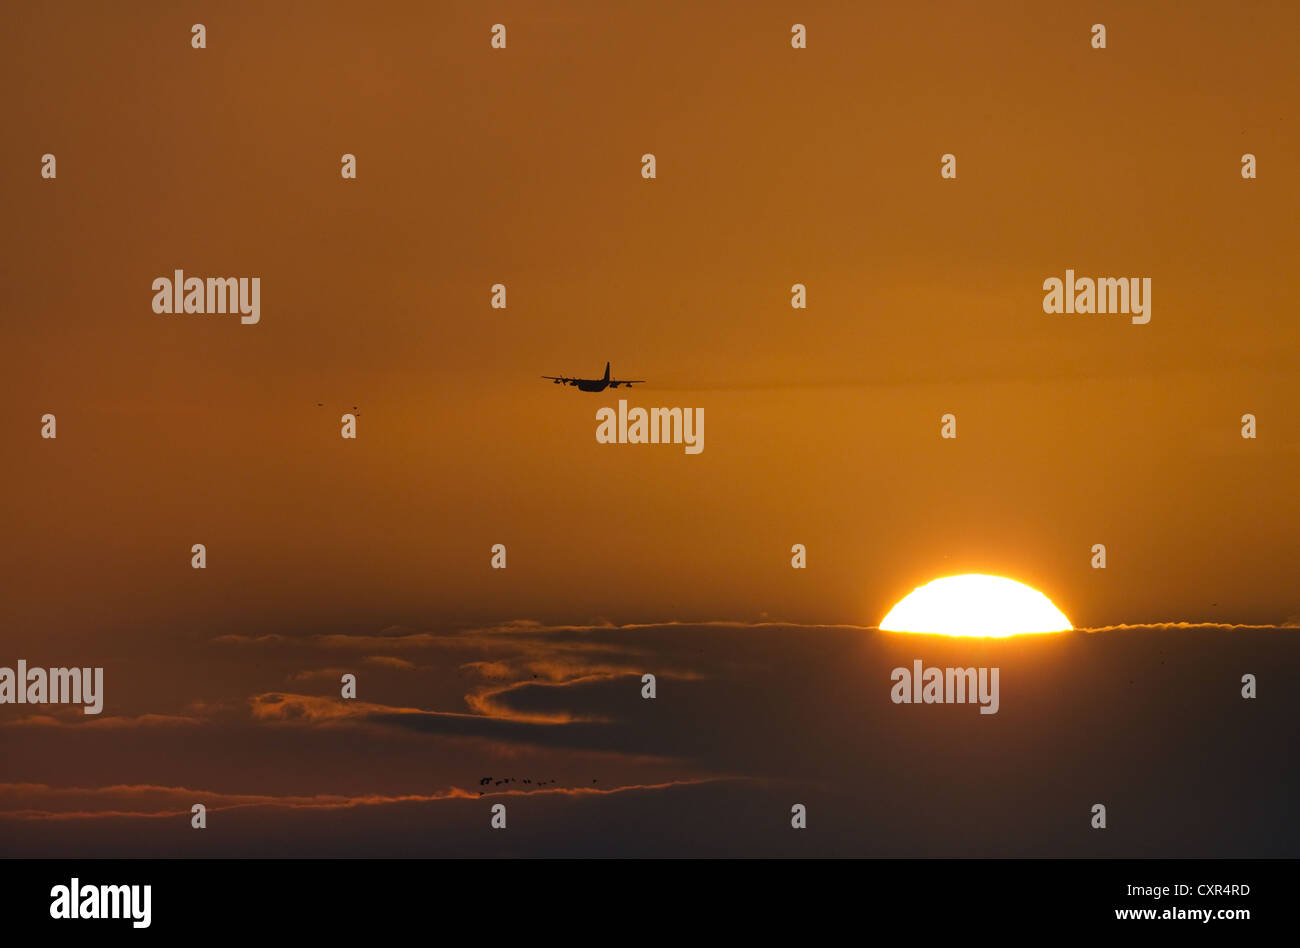 RAF Airplane at sunset over tidal creeks Norfolk - Stock Image